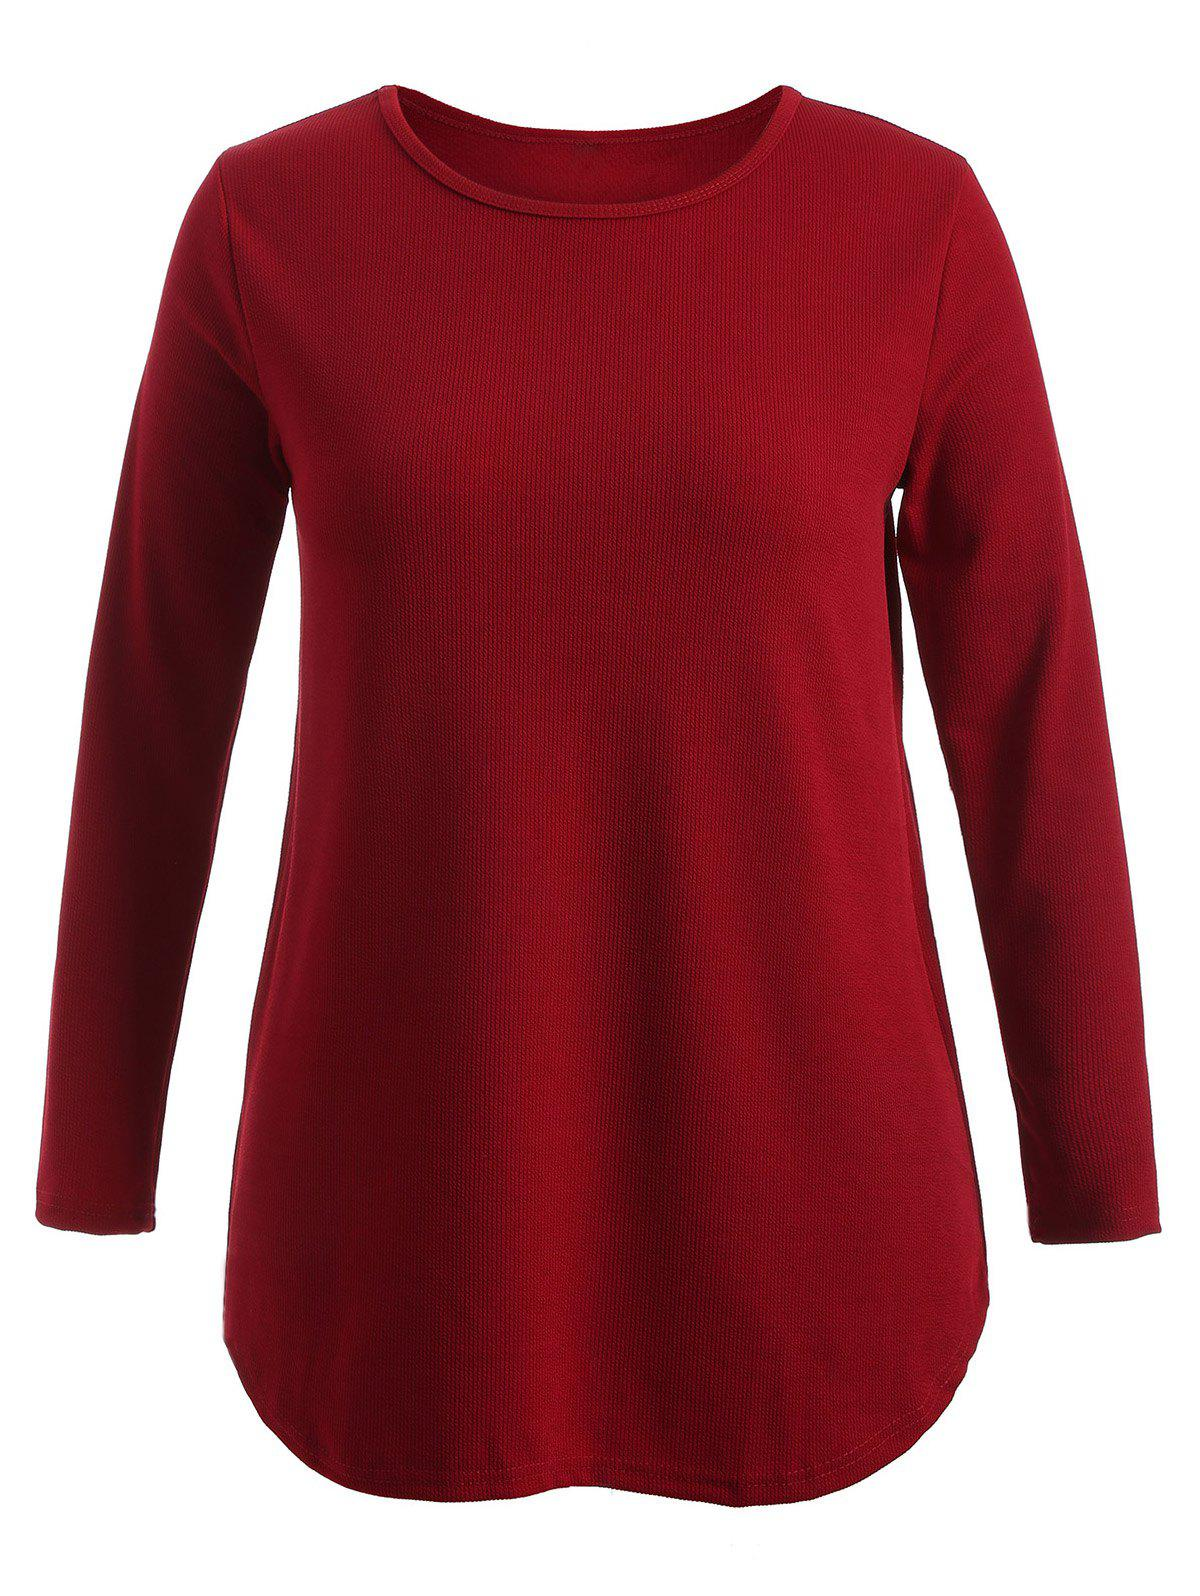 Plus Size Knitwear with Arc Hem - WINE RED 3XL